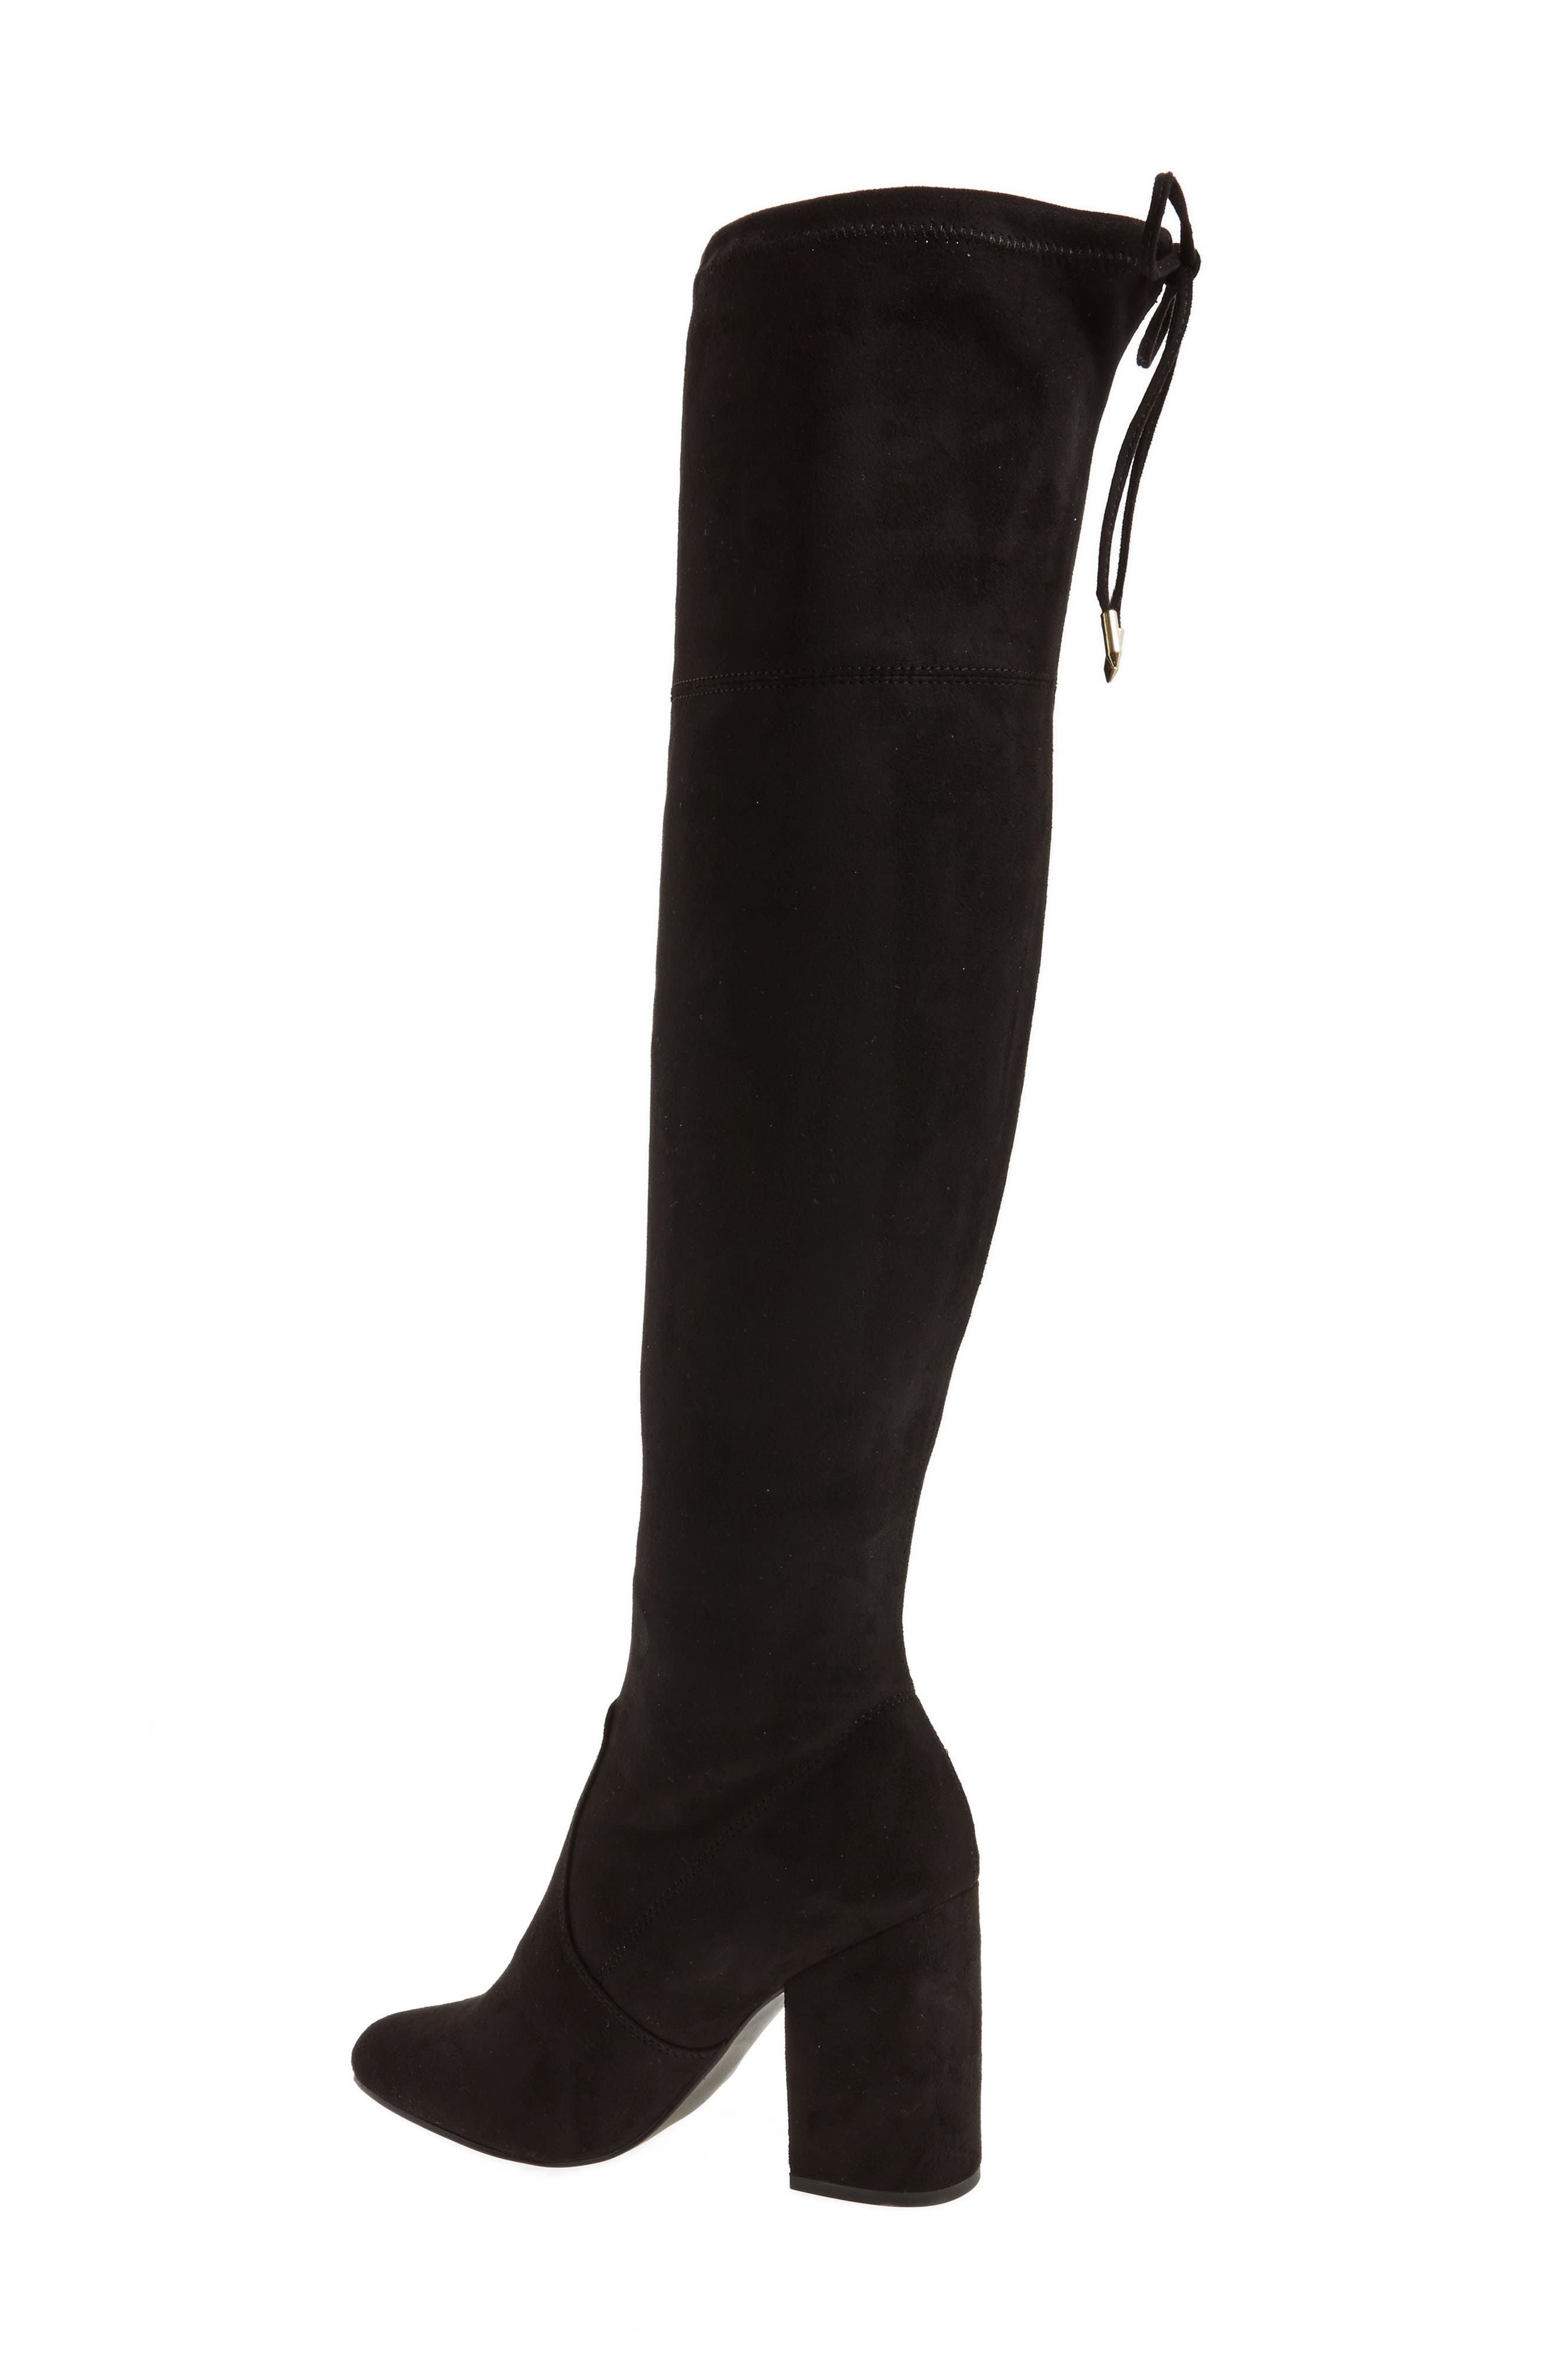 Niela Stretchy Over the Knee Boot,                             Alternate thumbnail 2, color,                             001